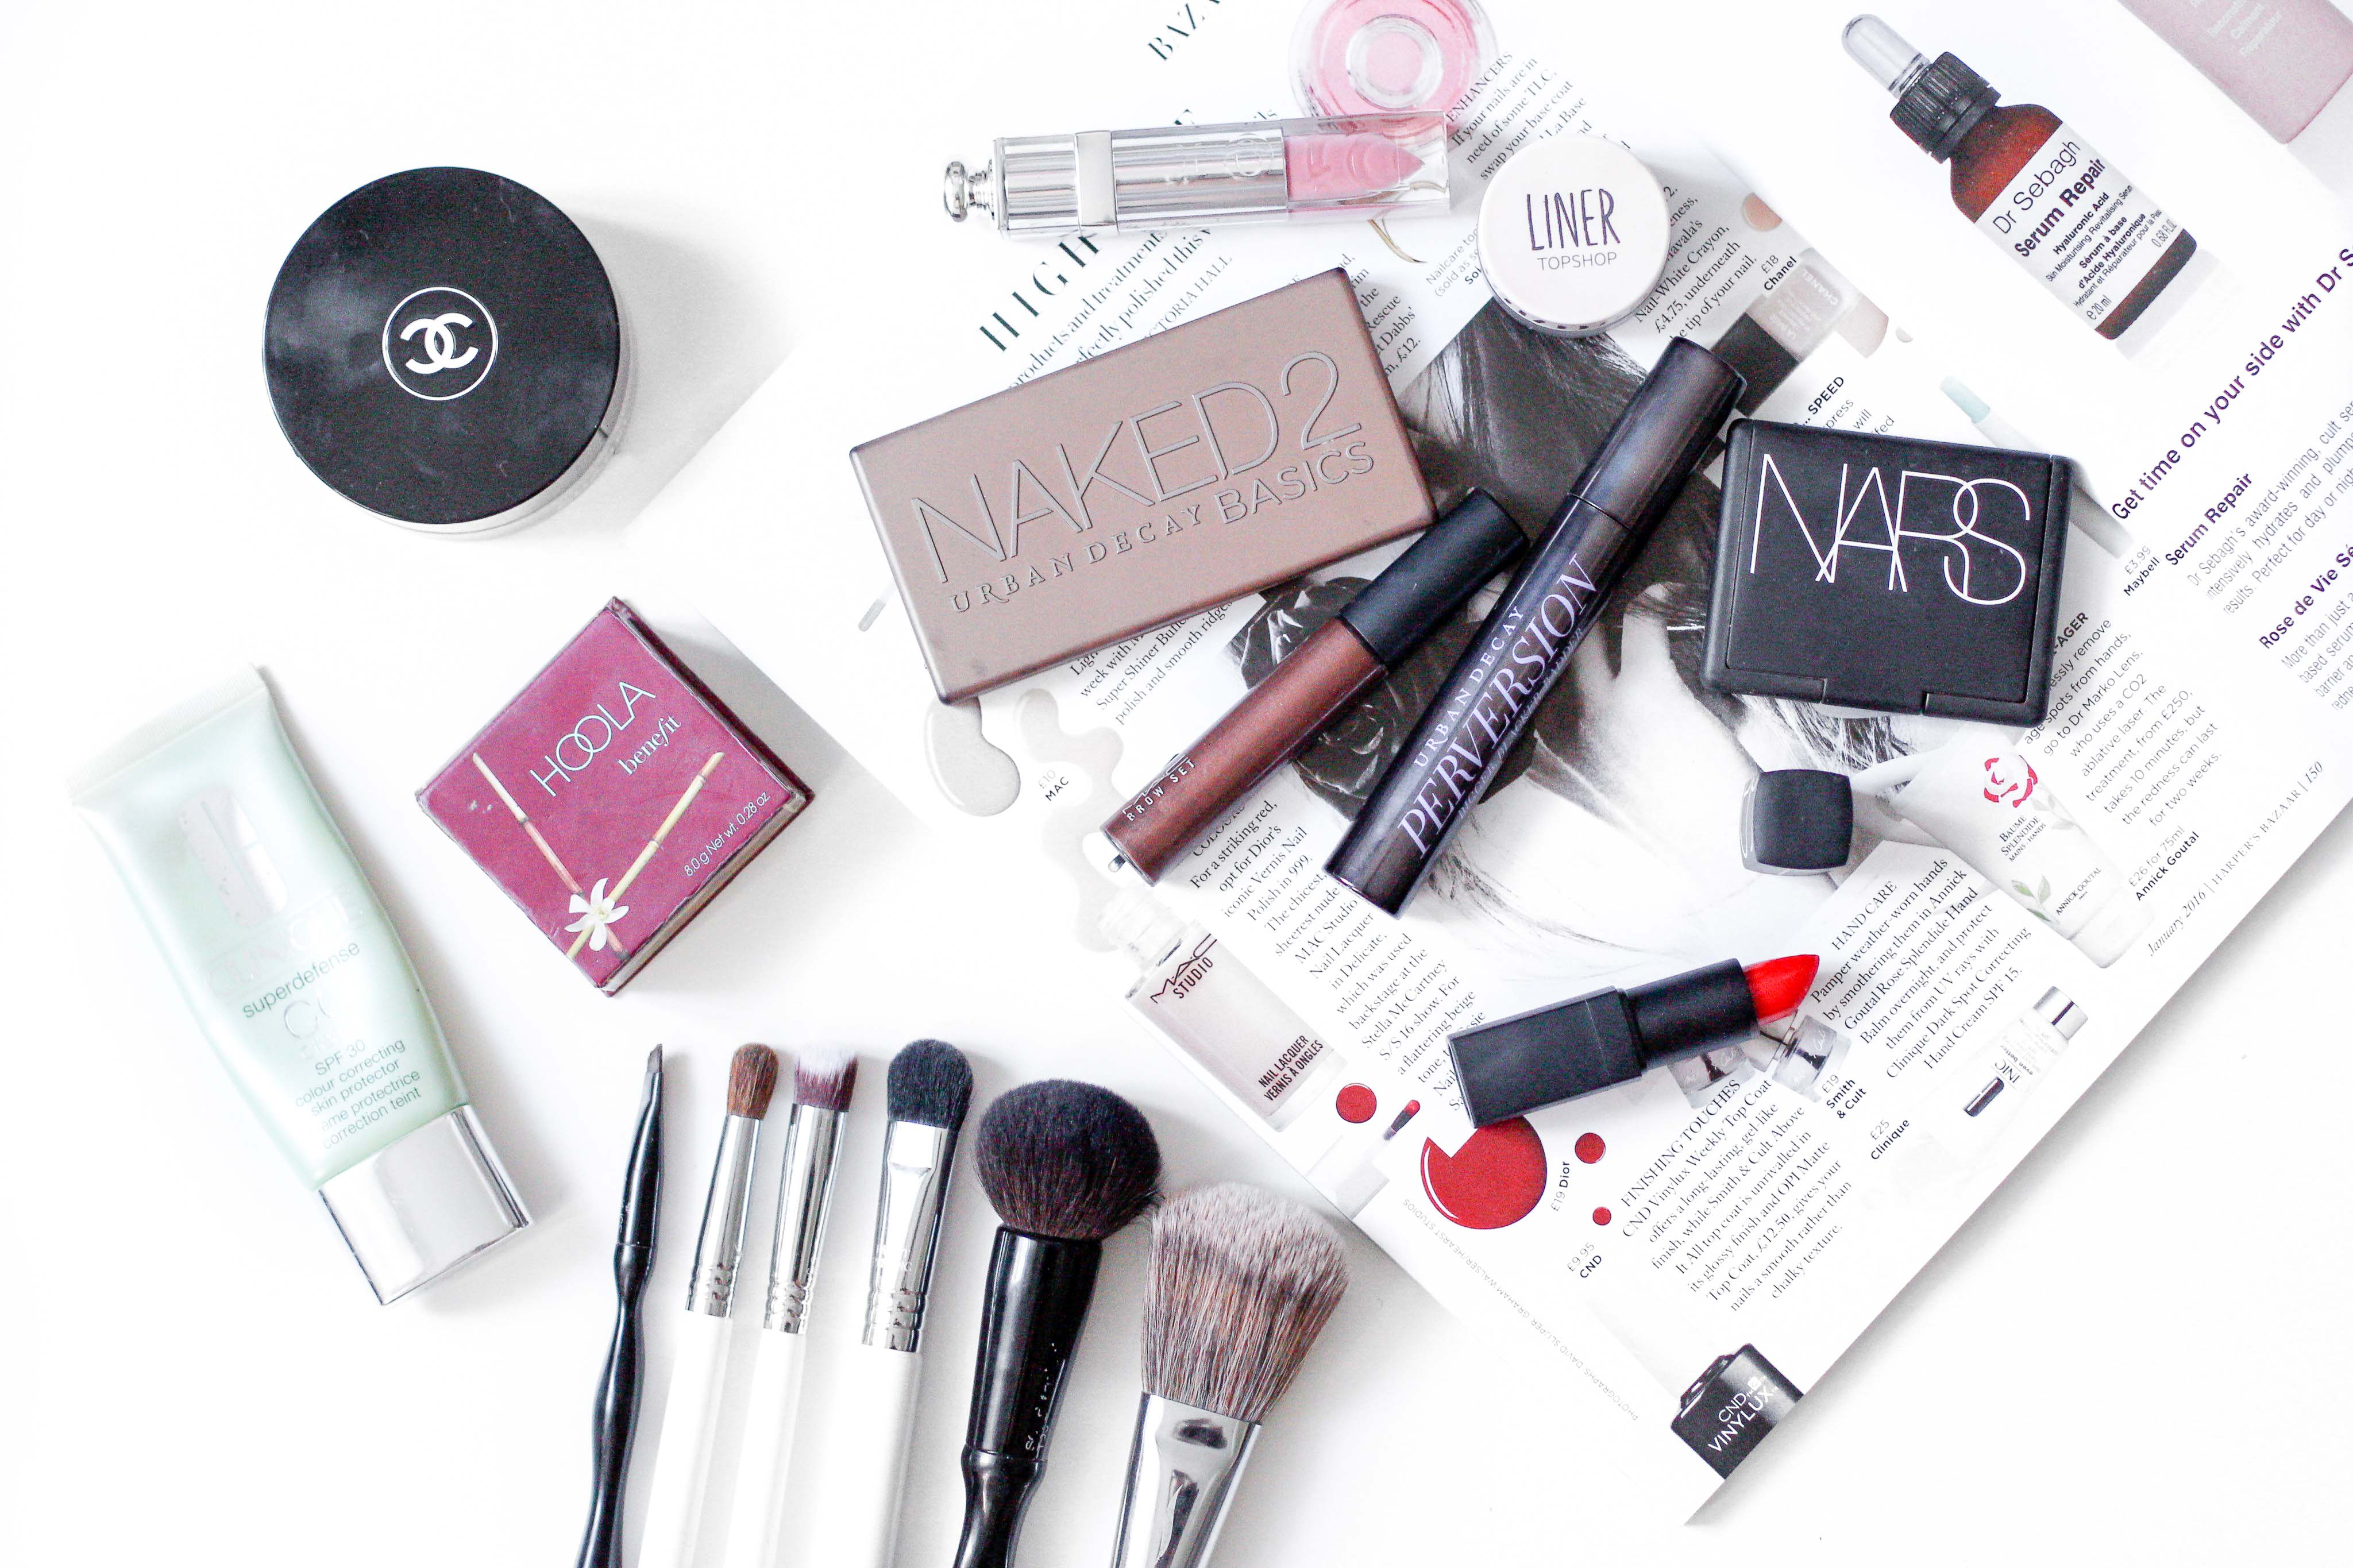 10 Make-up Products every woman should own